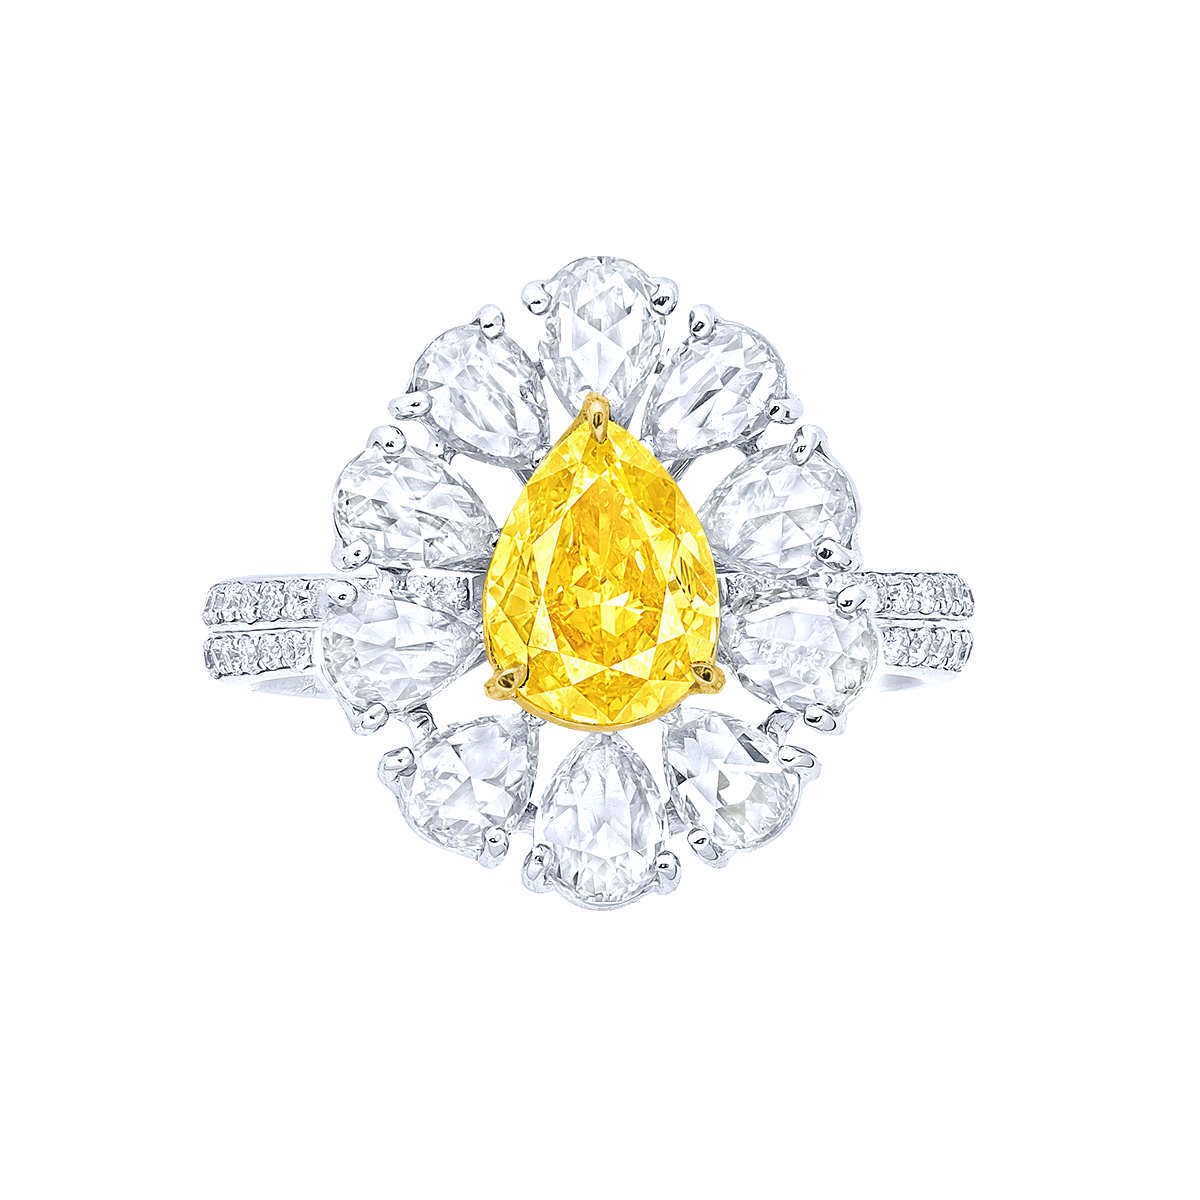 GIA 1.01克拉 艷彩黃鑽鑽戒